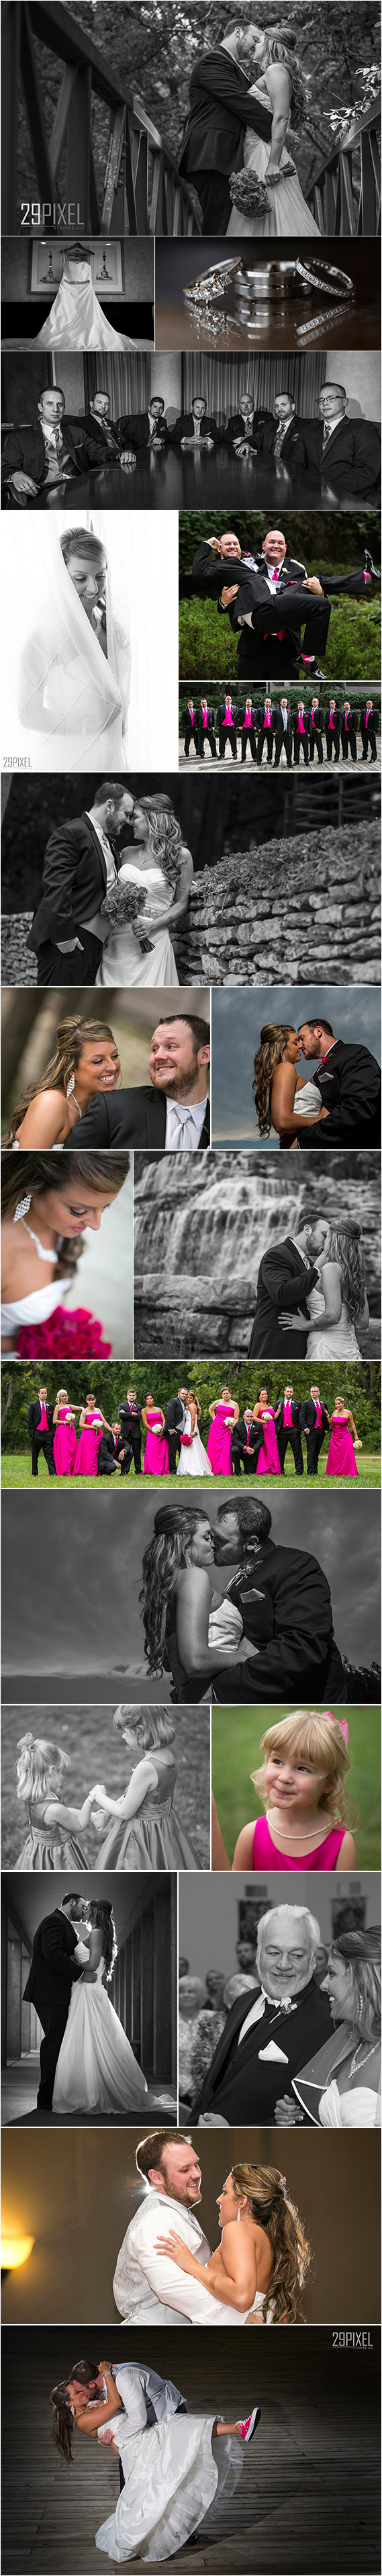 Kansas City Wedding Photographer Nick Schale captures Tina and Jonathan's day!